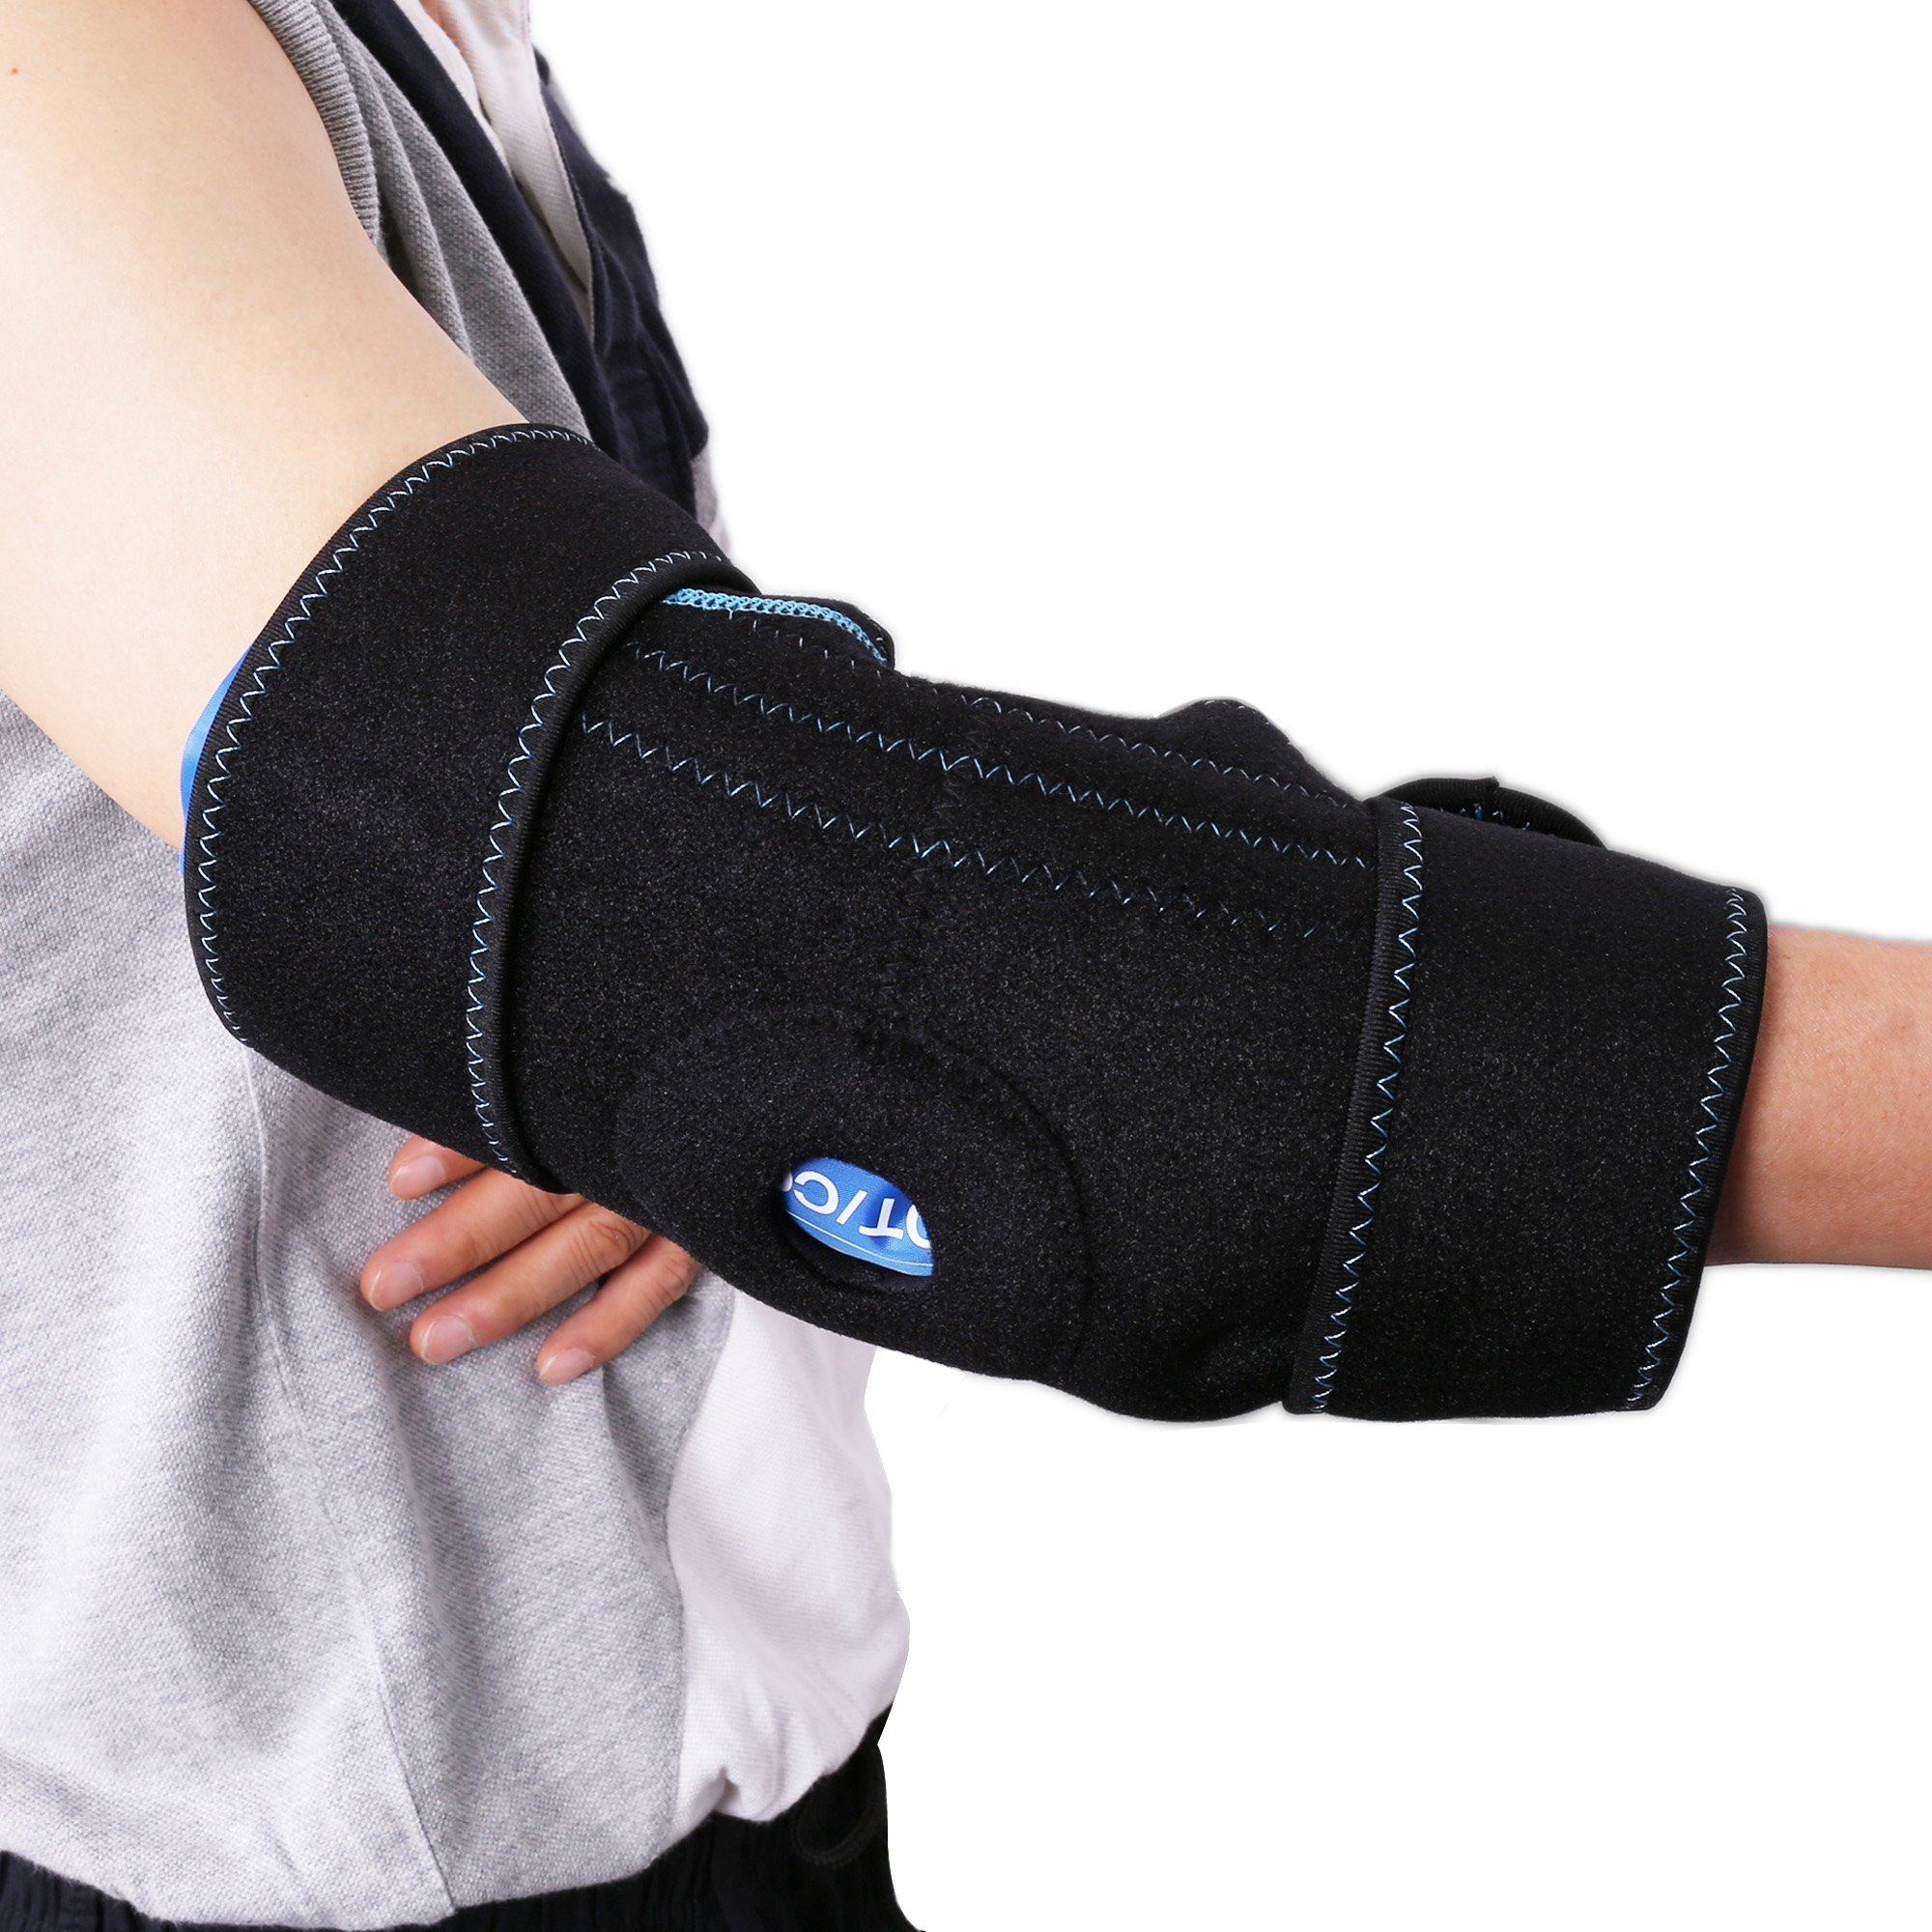 Gel Pack with Elbow Support Wrap for Cold Hot Therapy by LotFancy - Hot Cold Ice Pack for Injuries, Sprained Elbows, Tendonitis, Arthritis, and Other Sports Injuries, FDA Approved